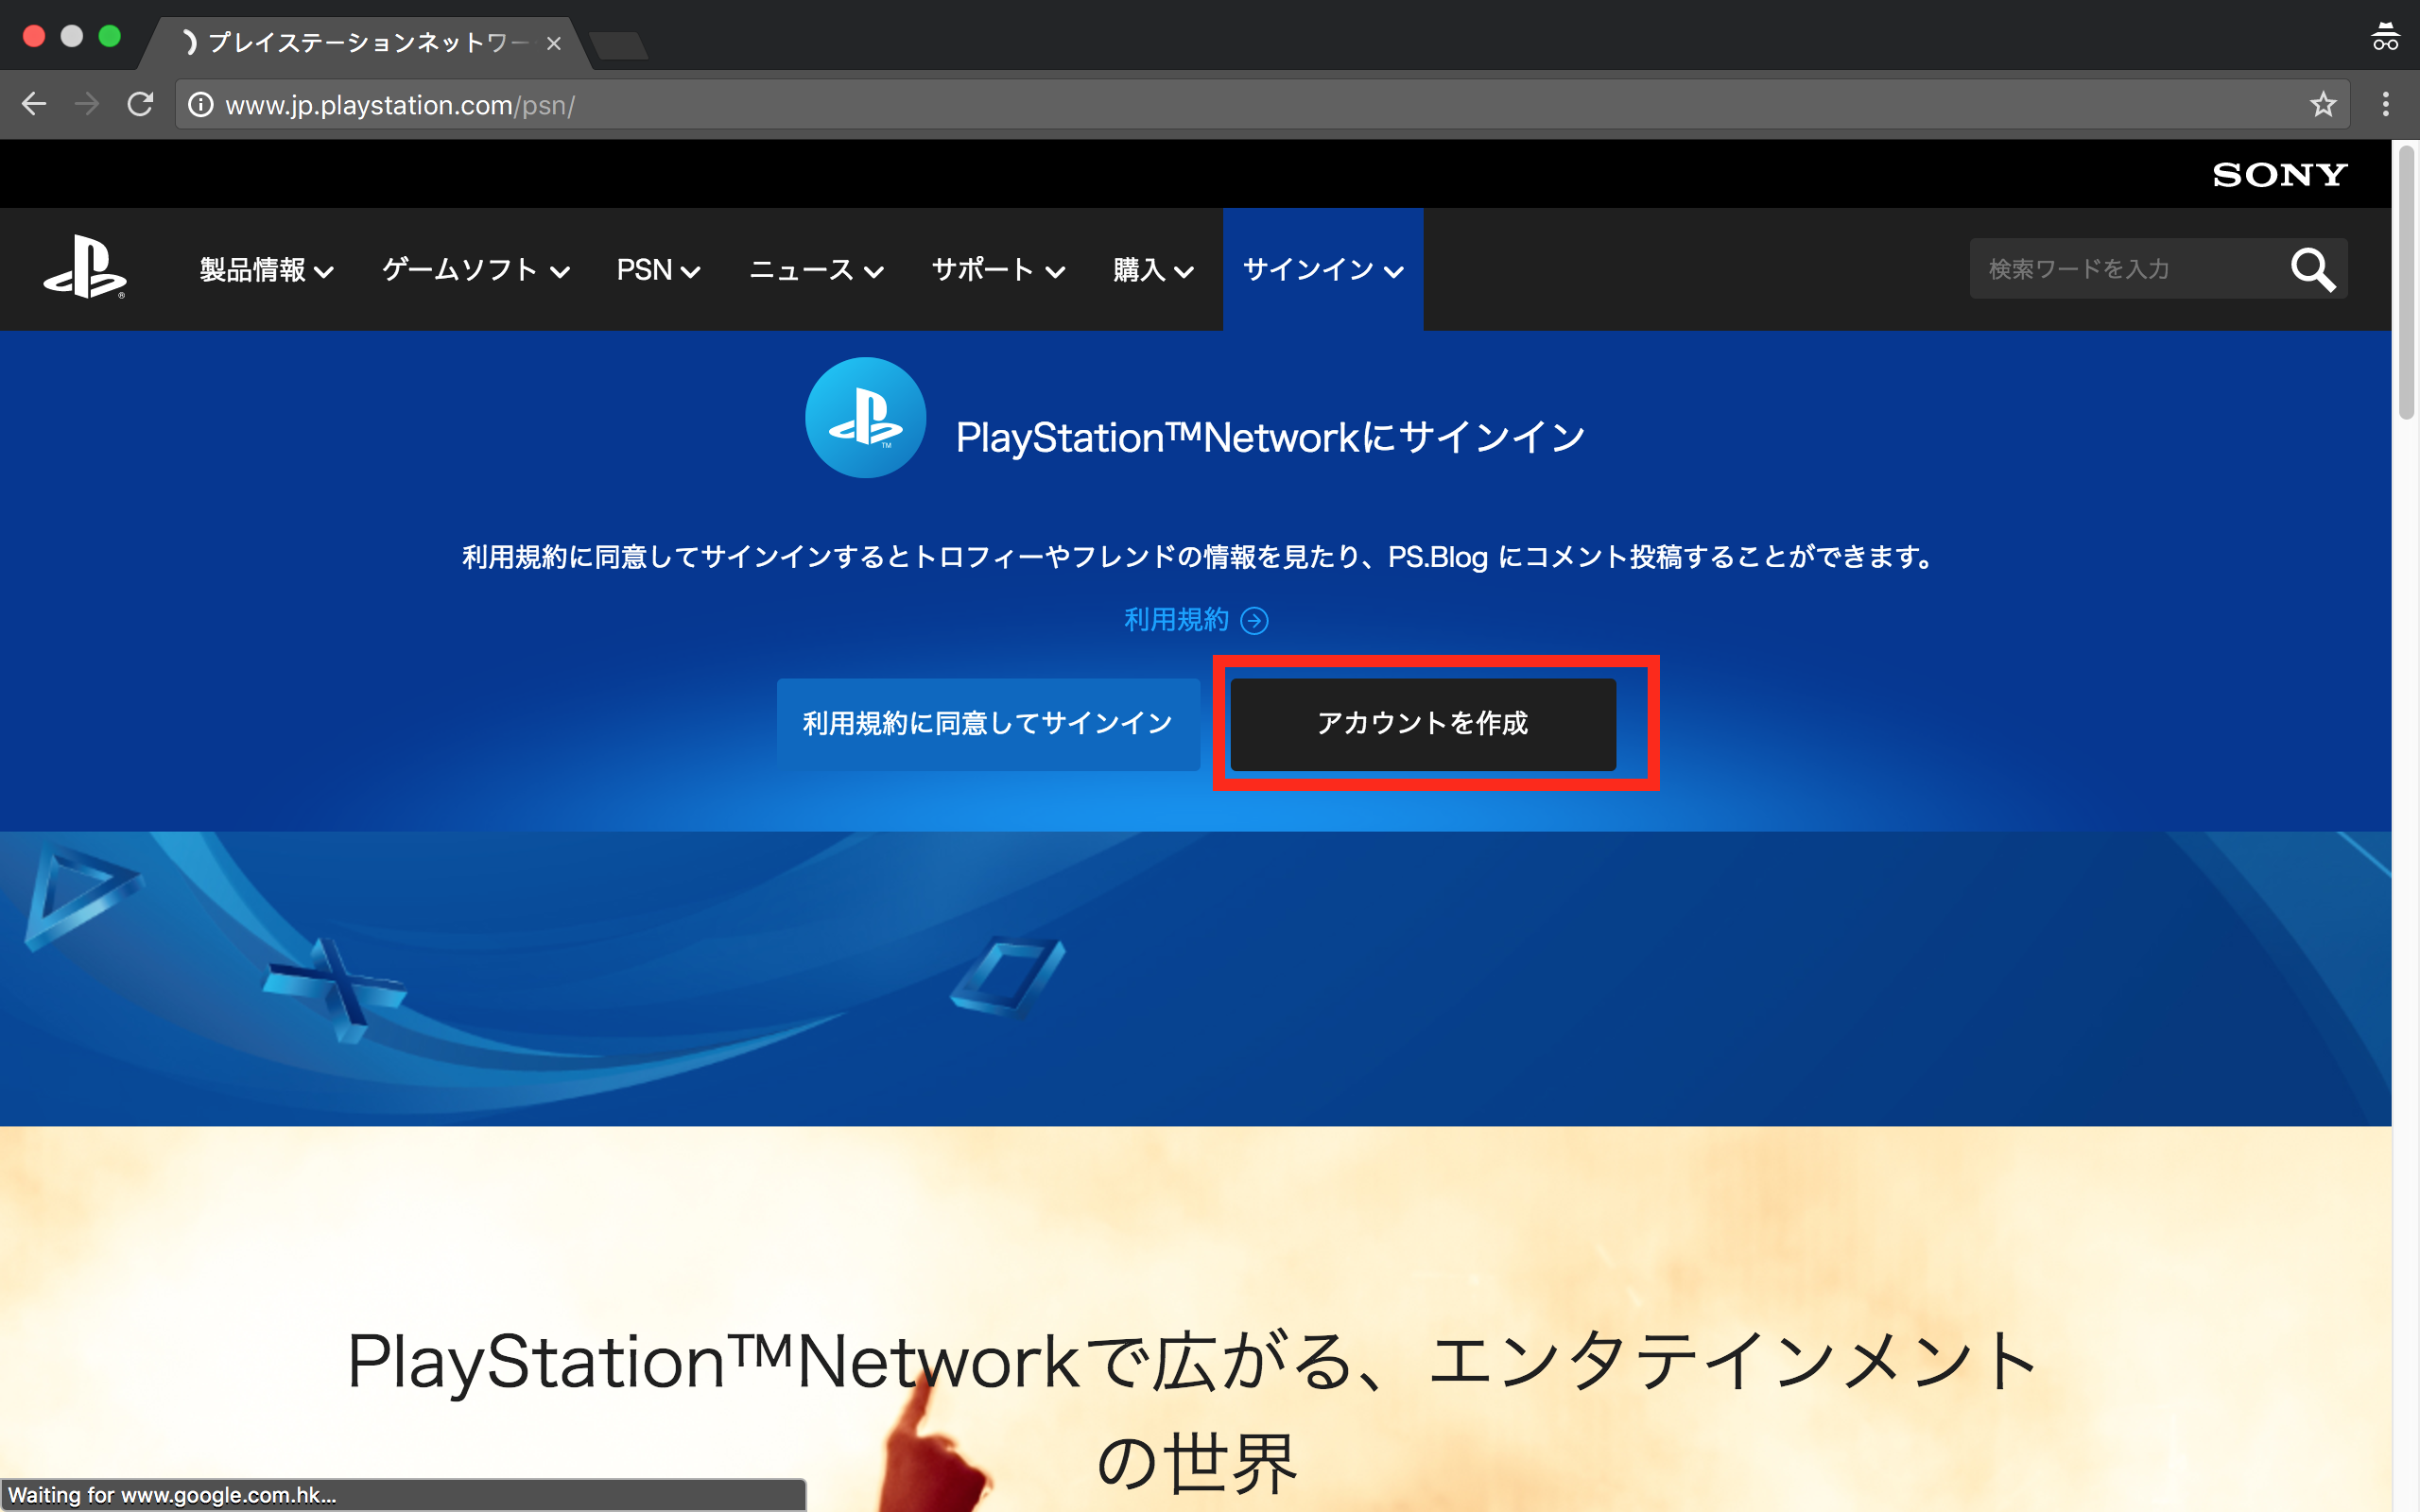 PlayStation Plus Free Game In August + Japan PSN Account